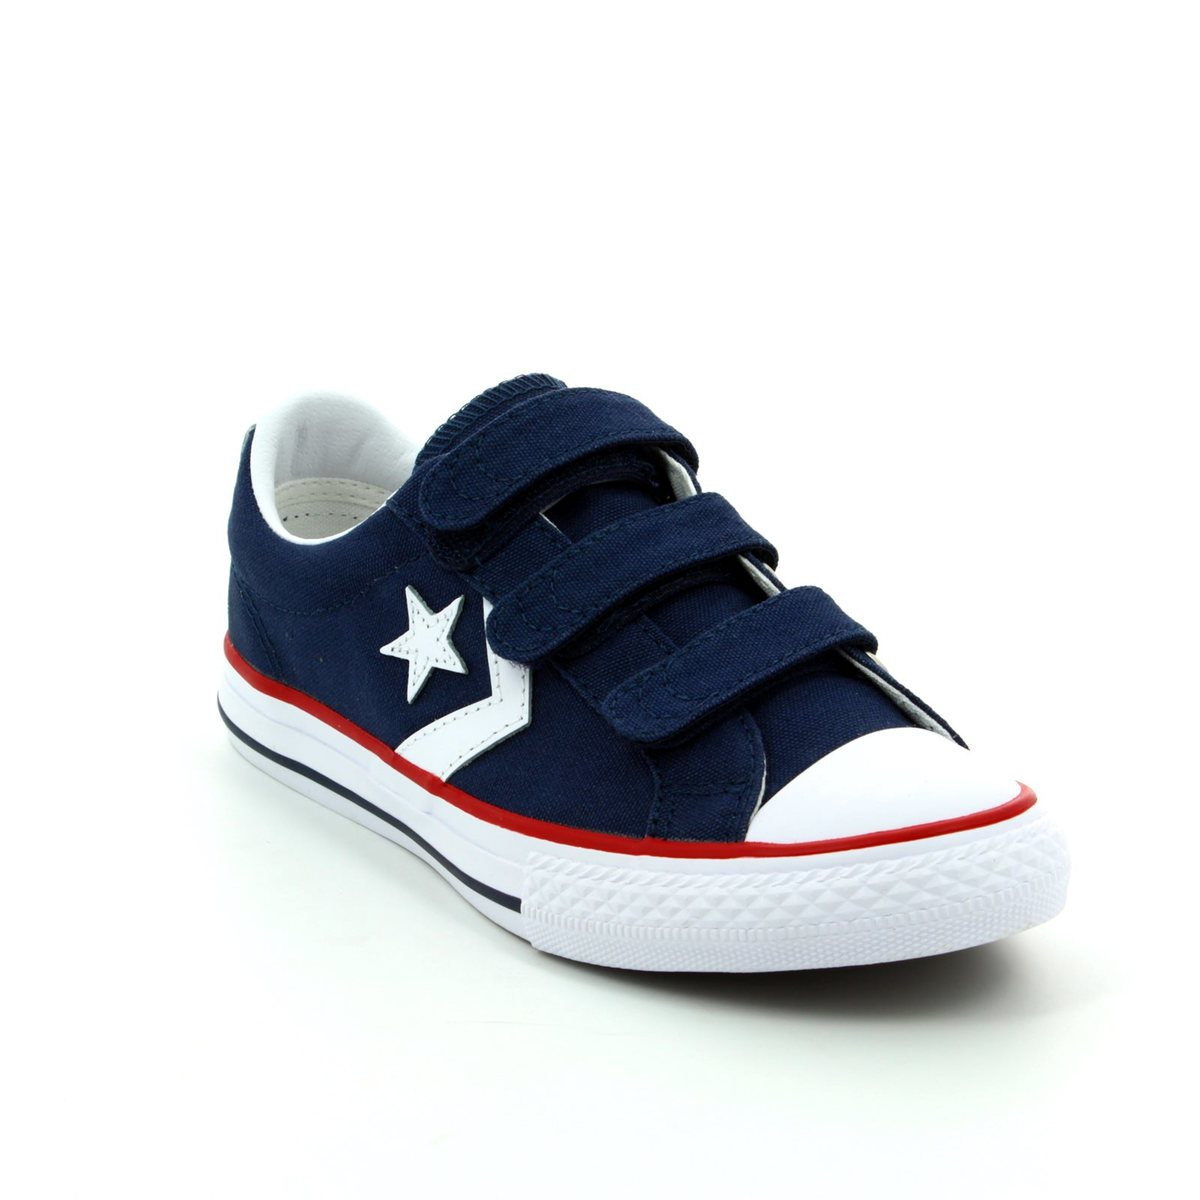 a1671a7c7b4383 Converse Trainers - Navy - 315467 412 Star Player 3V OX Velcro